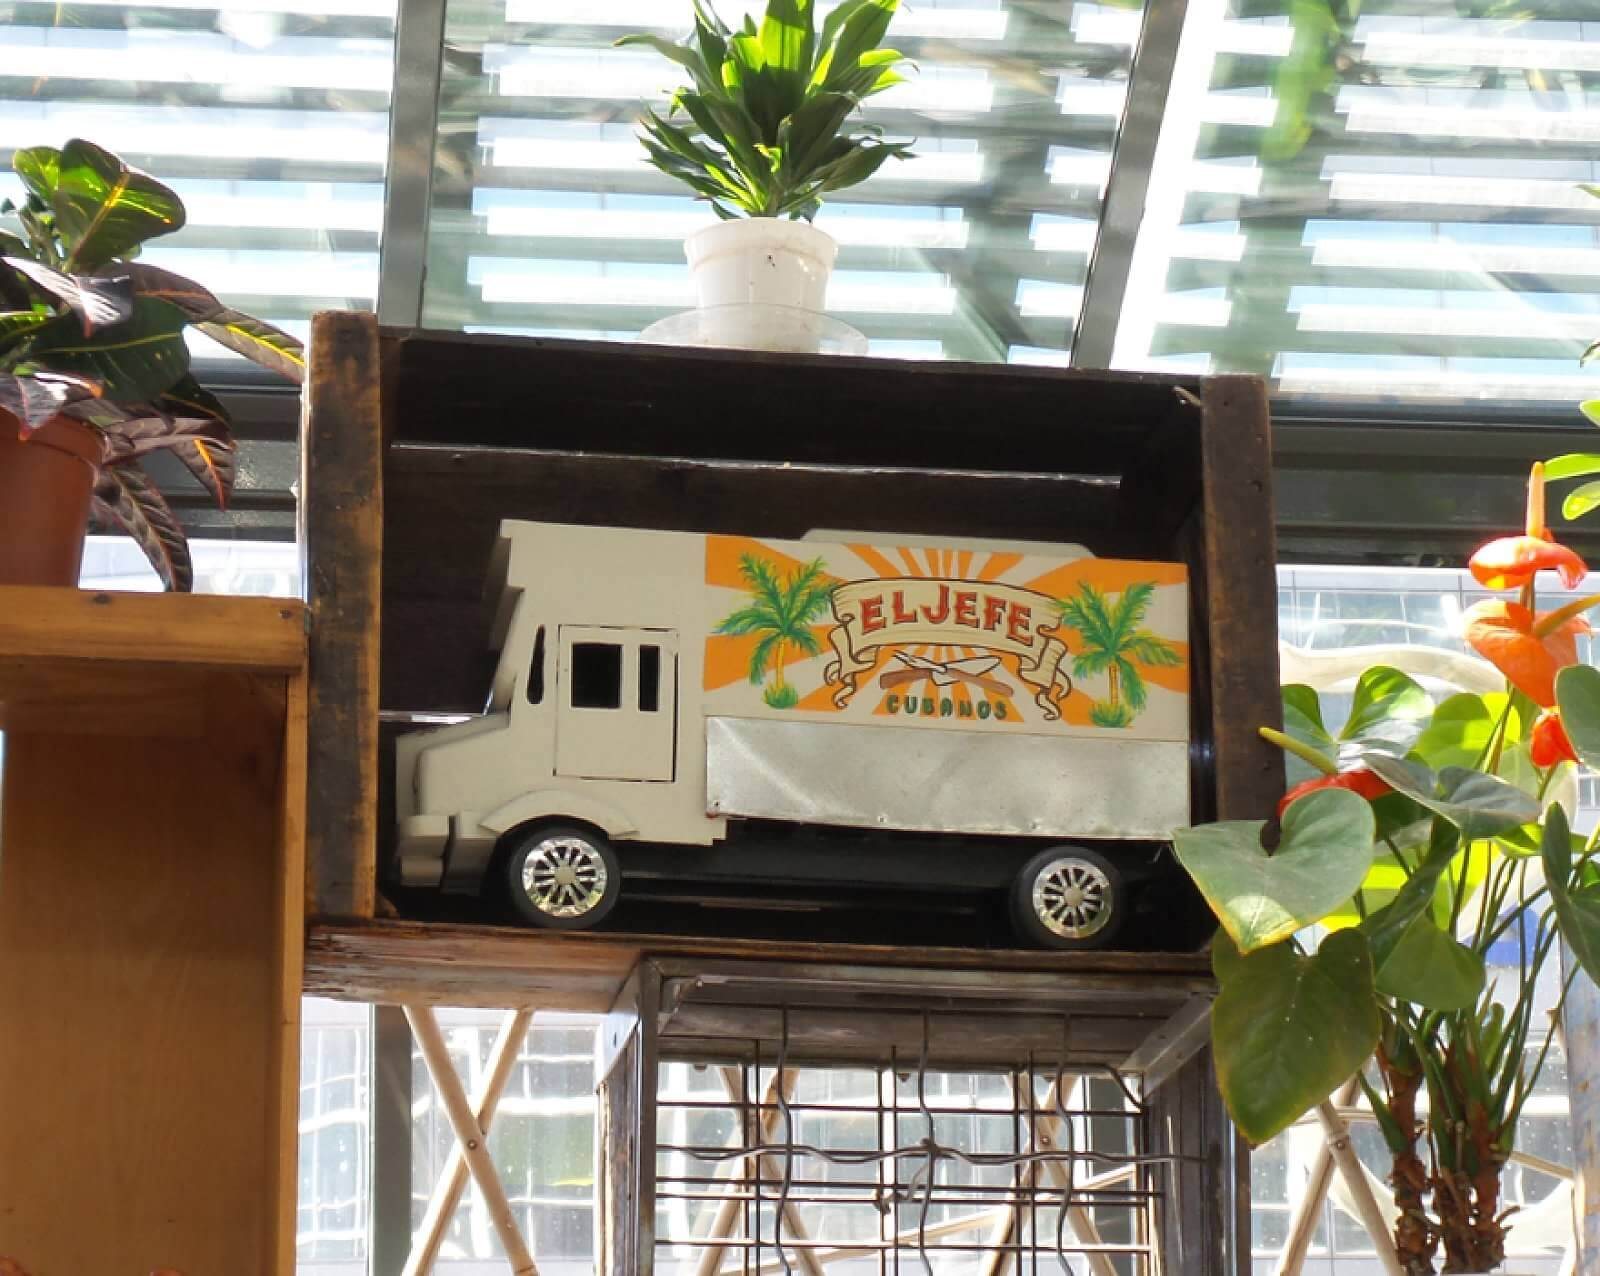 Model of the El Jefe food truck from the film Chef.